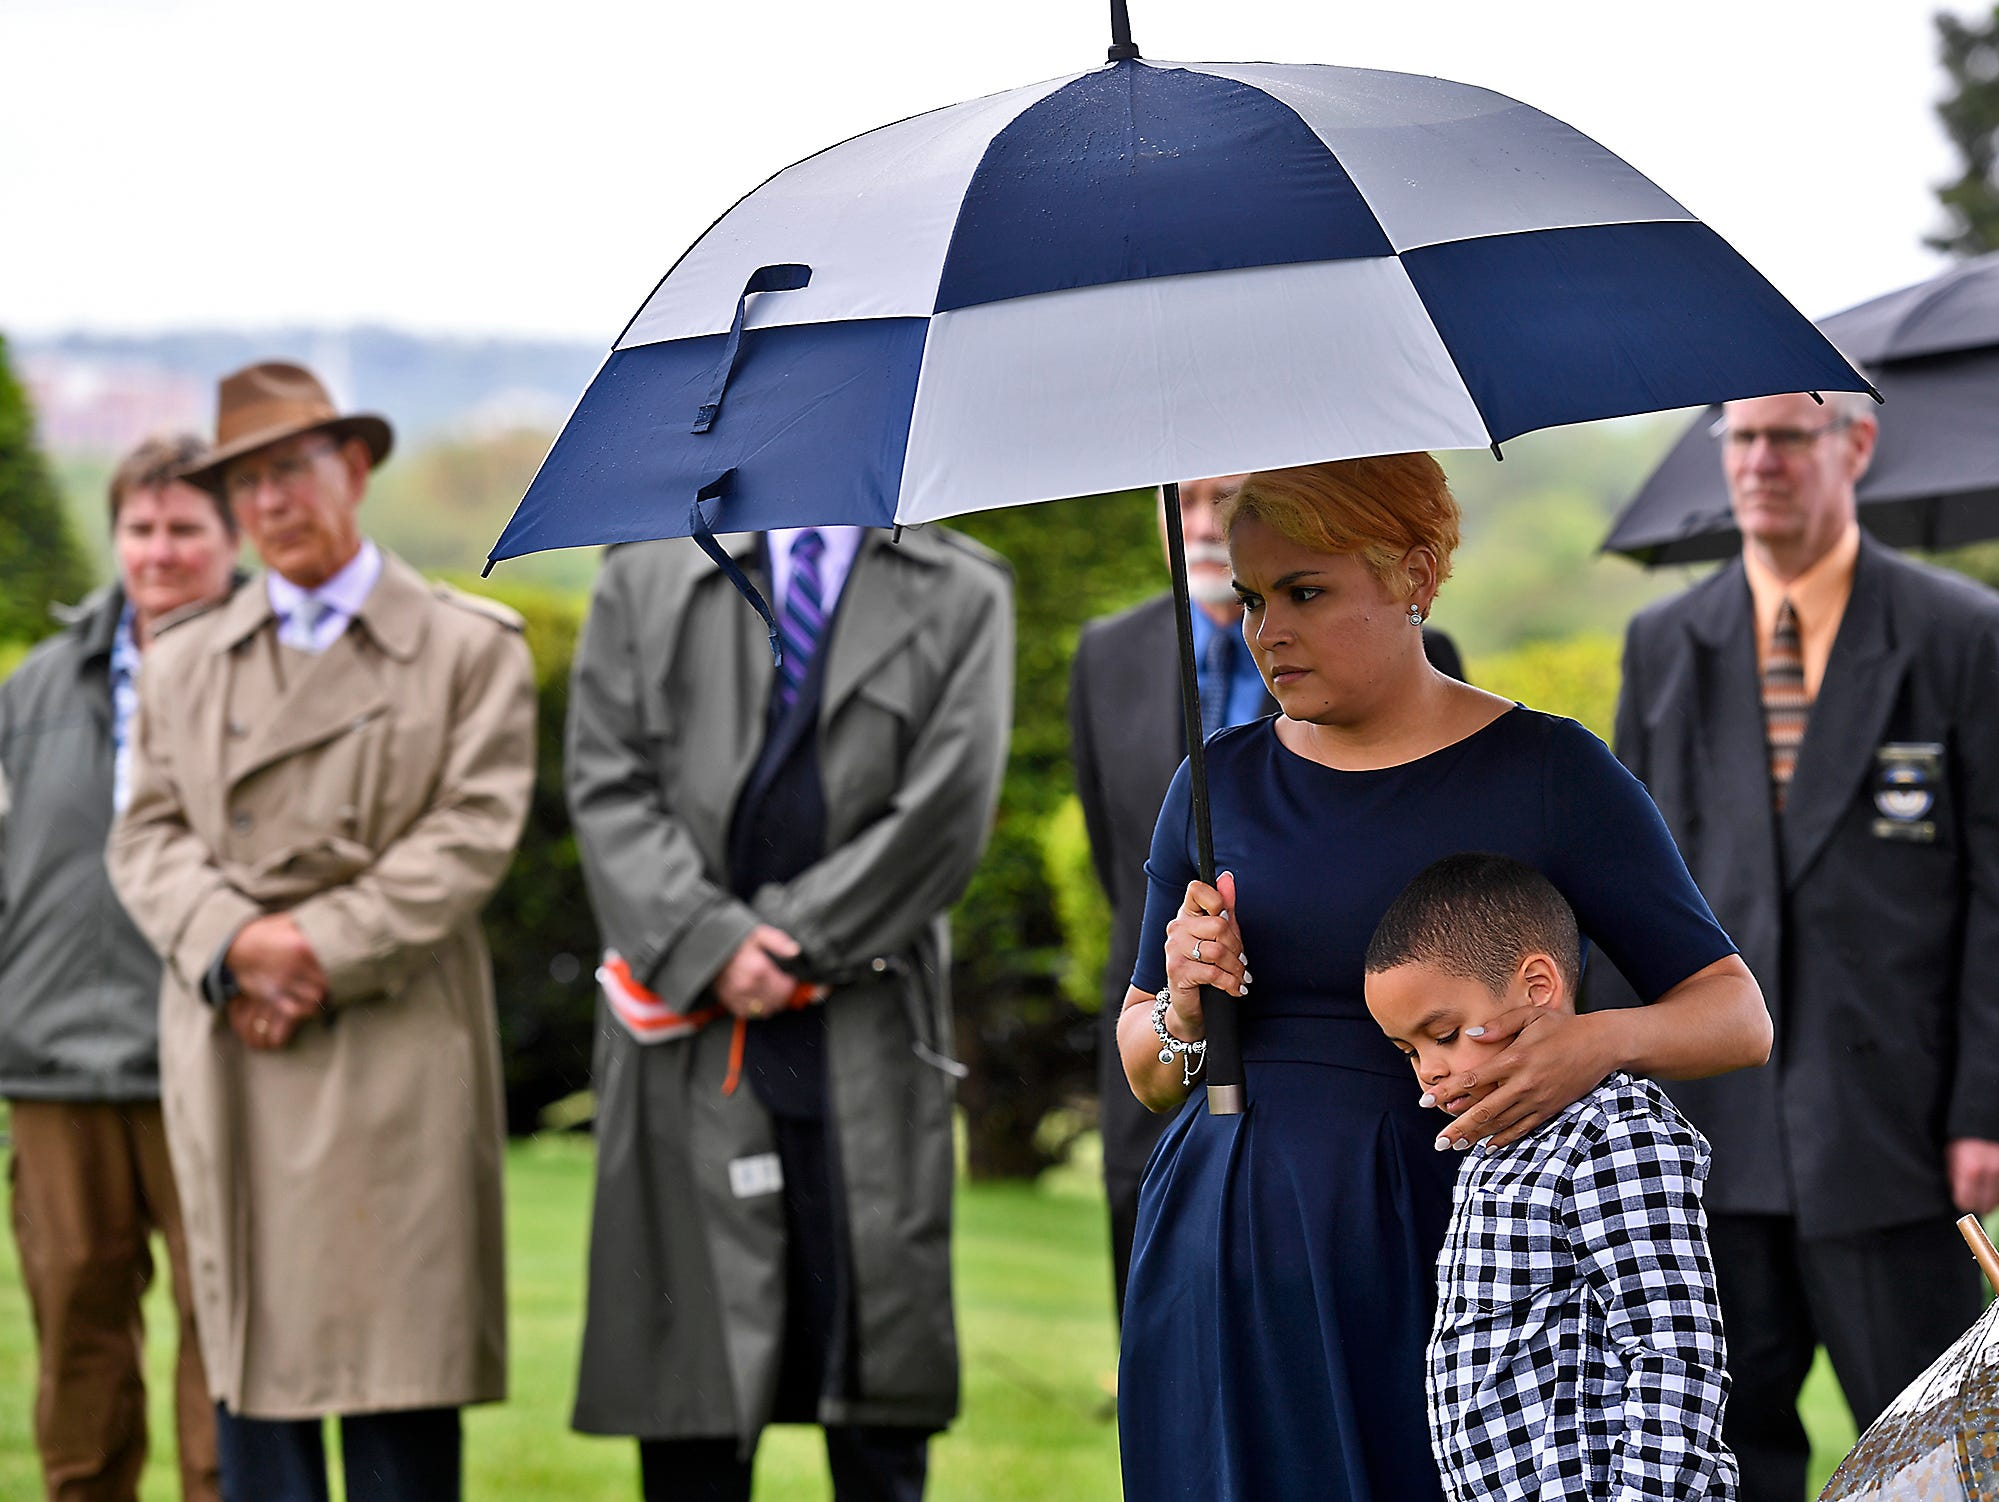 Rebeca Sable and her son Ethan attend a grave side service for her husband Officer Alex Sable during the Fraternal Order of Police (FOP) Lodge 15 annual memorial service, Sunday, May 5, 2019, at Prospect Hill Cemetery.John A. Pavoncello photo